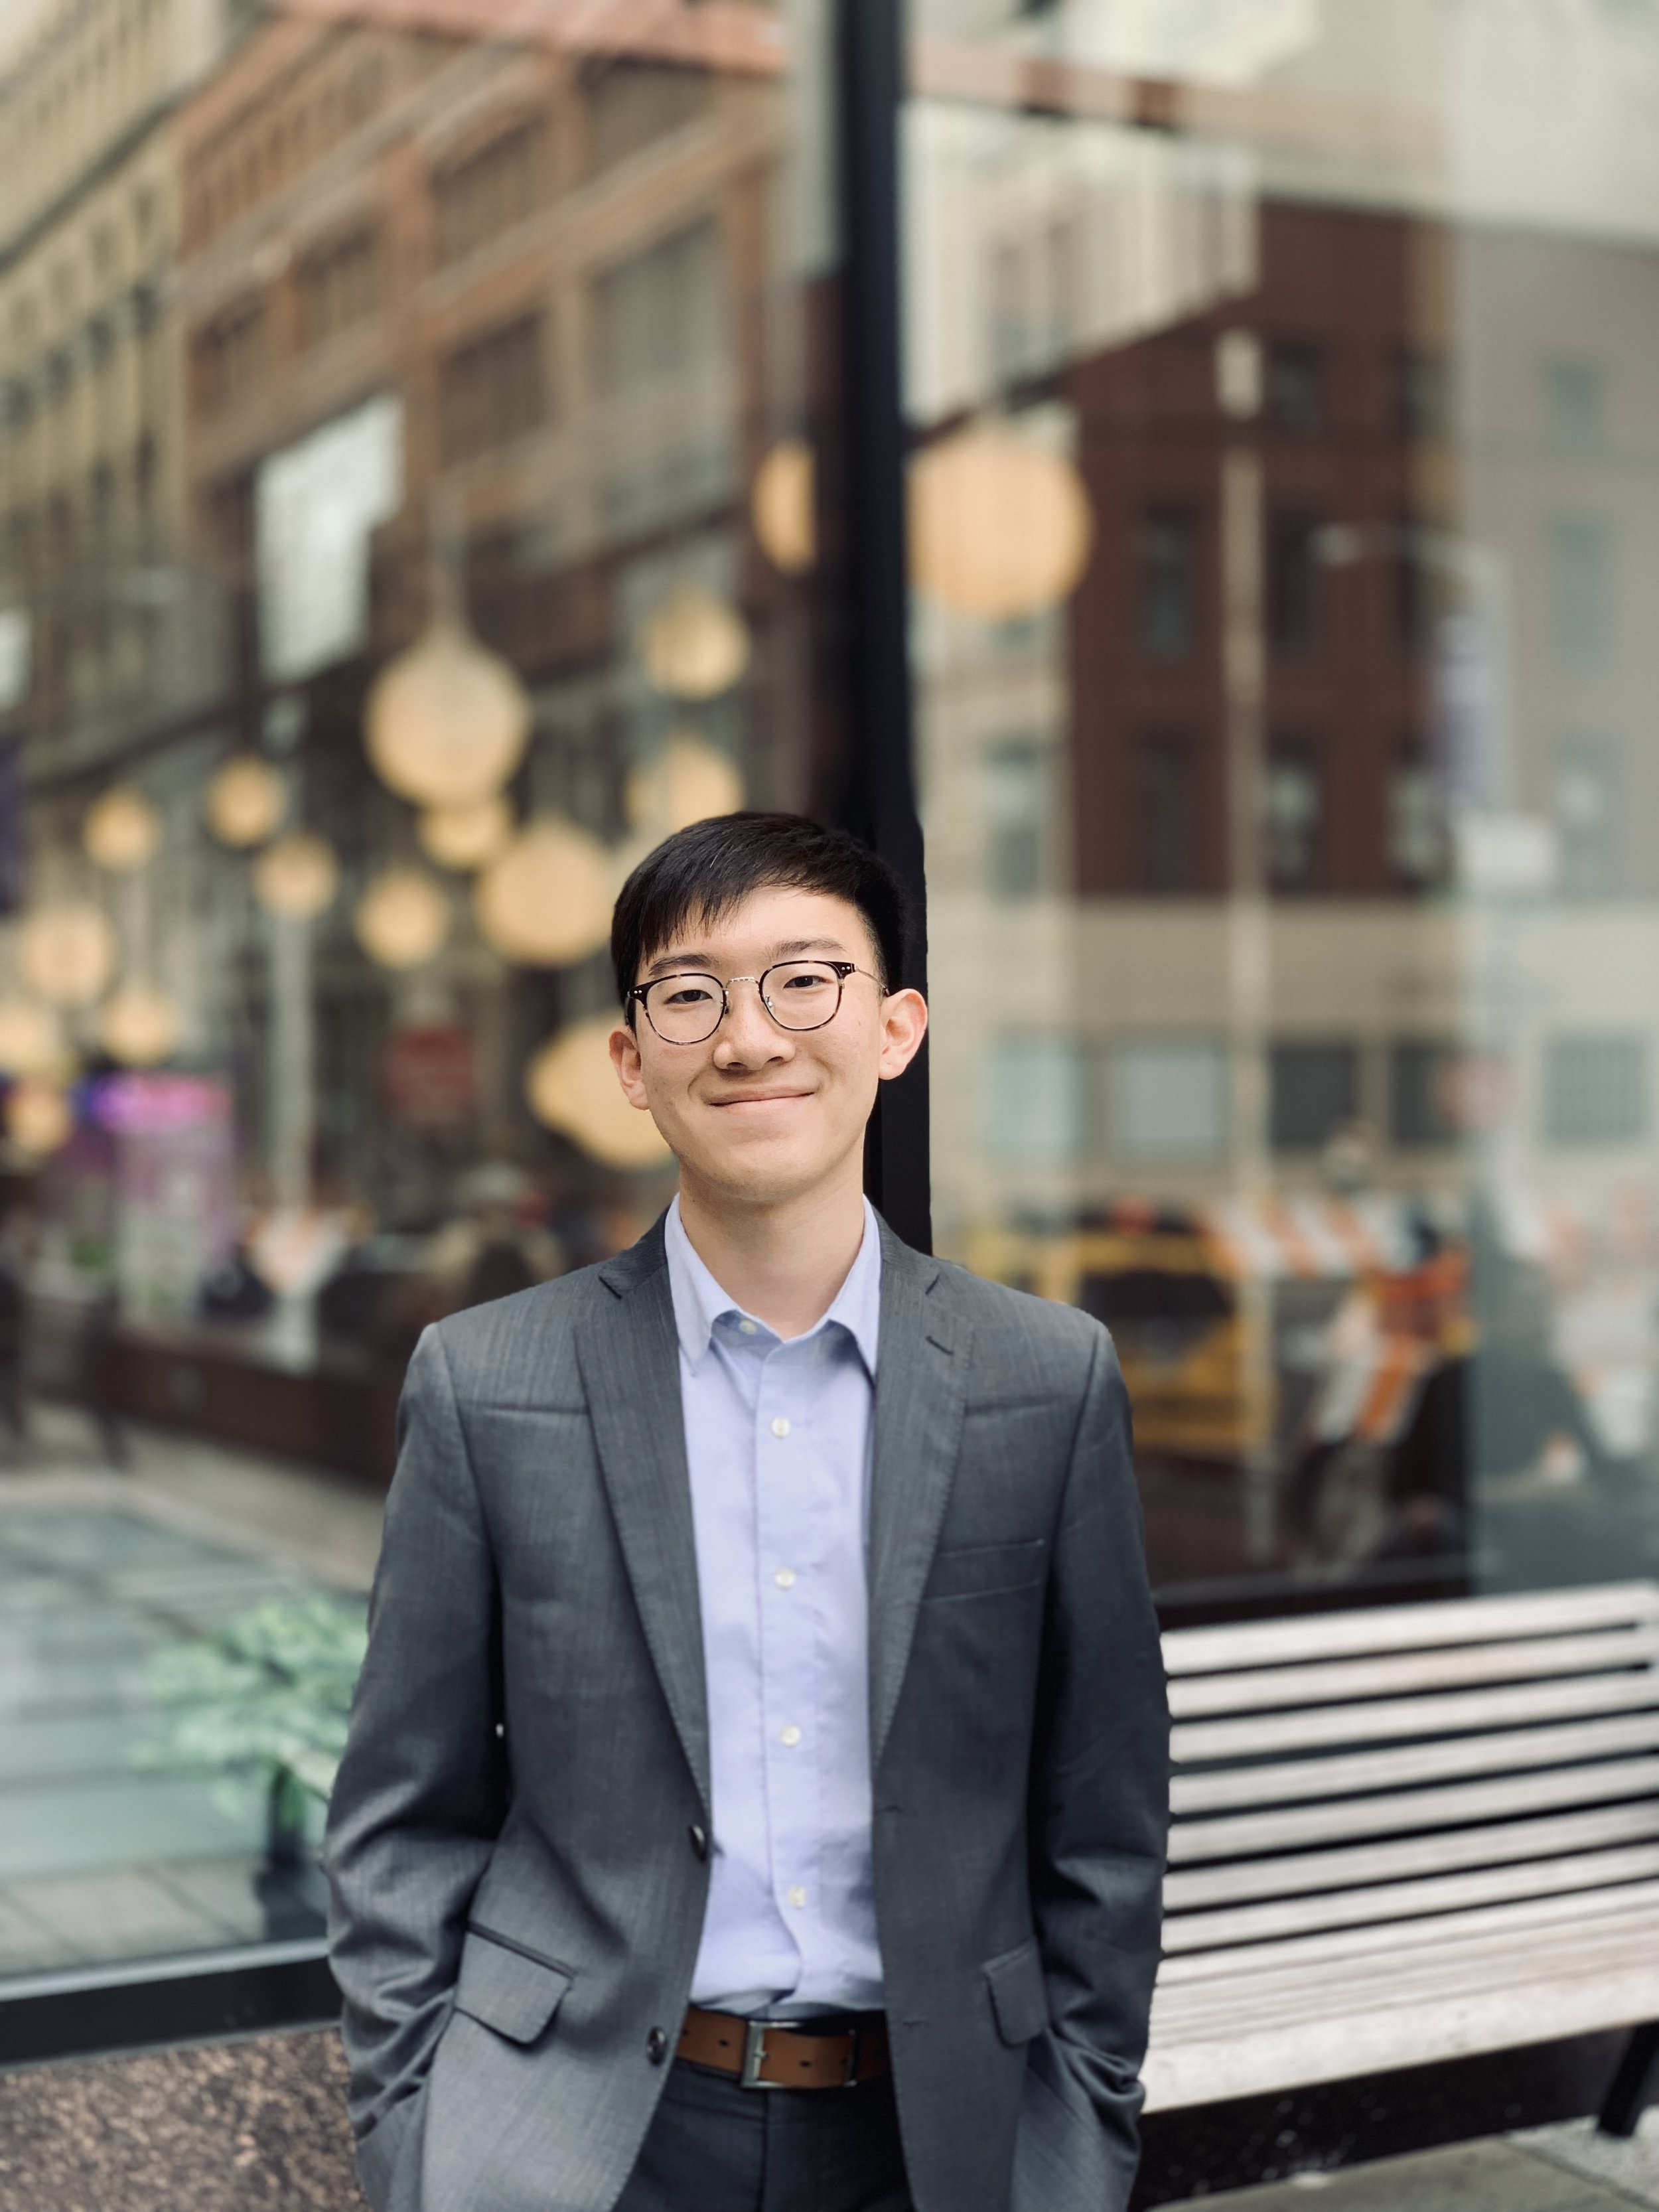 Peter Park    Long Short Analyst   Peter Park is a junior concentrating in finance & operations with a minor in music. In his free time, he enjoys playing the cello, cooking for friends, learning new baking recipes, playing Smash games, reading, and hiking.